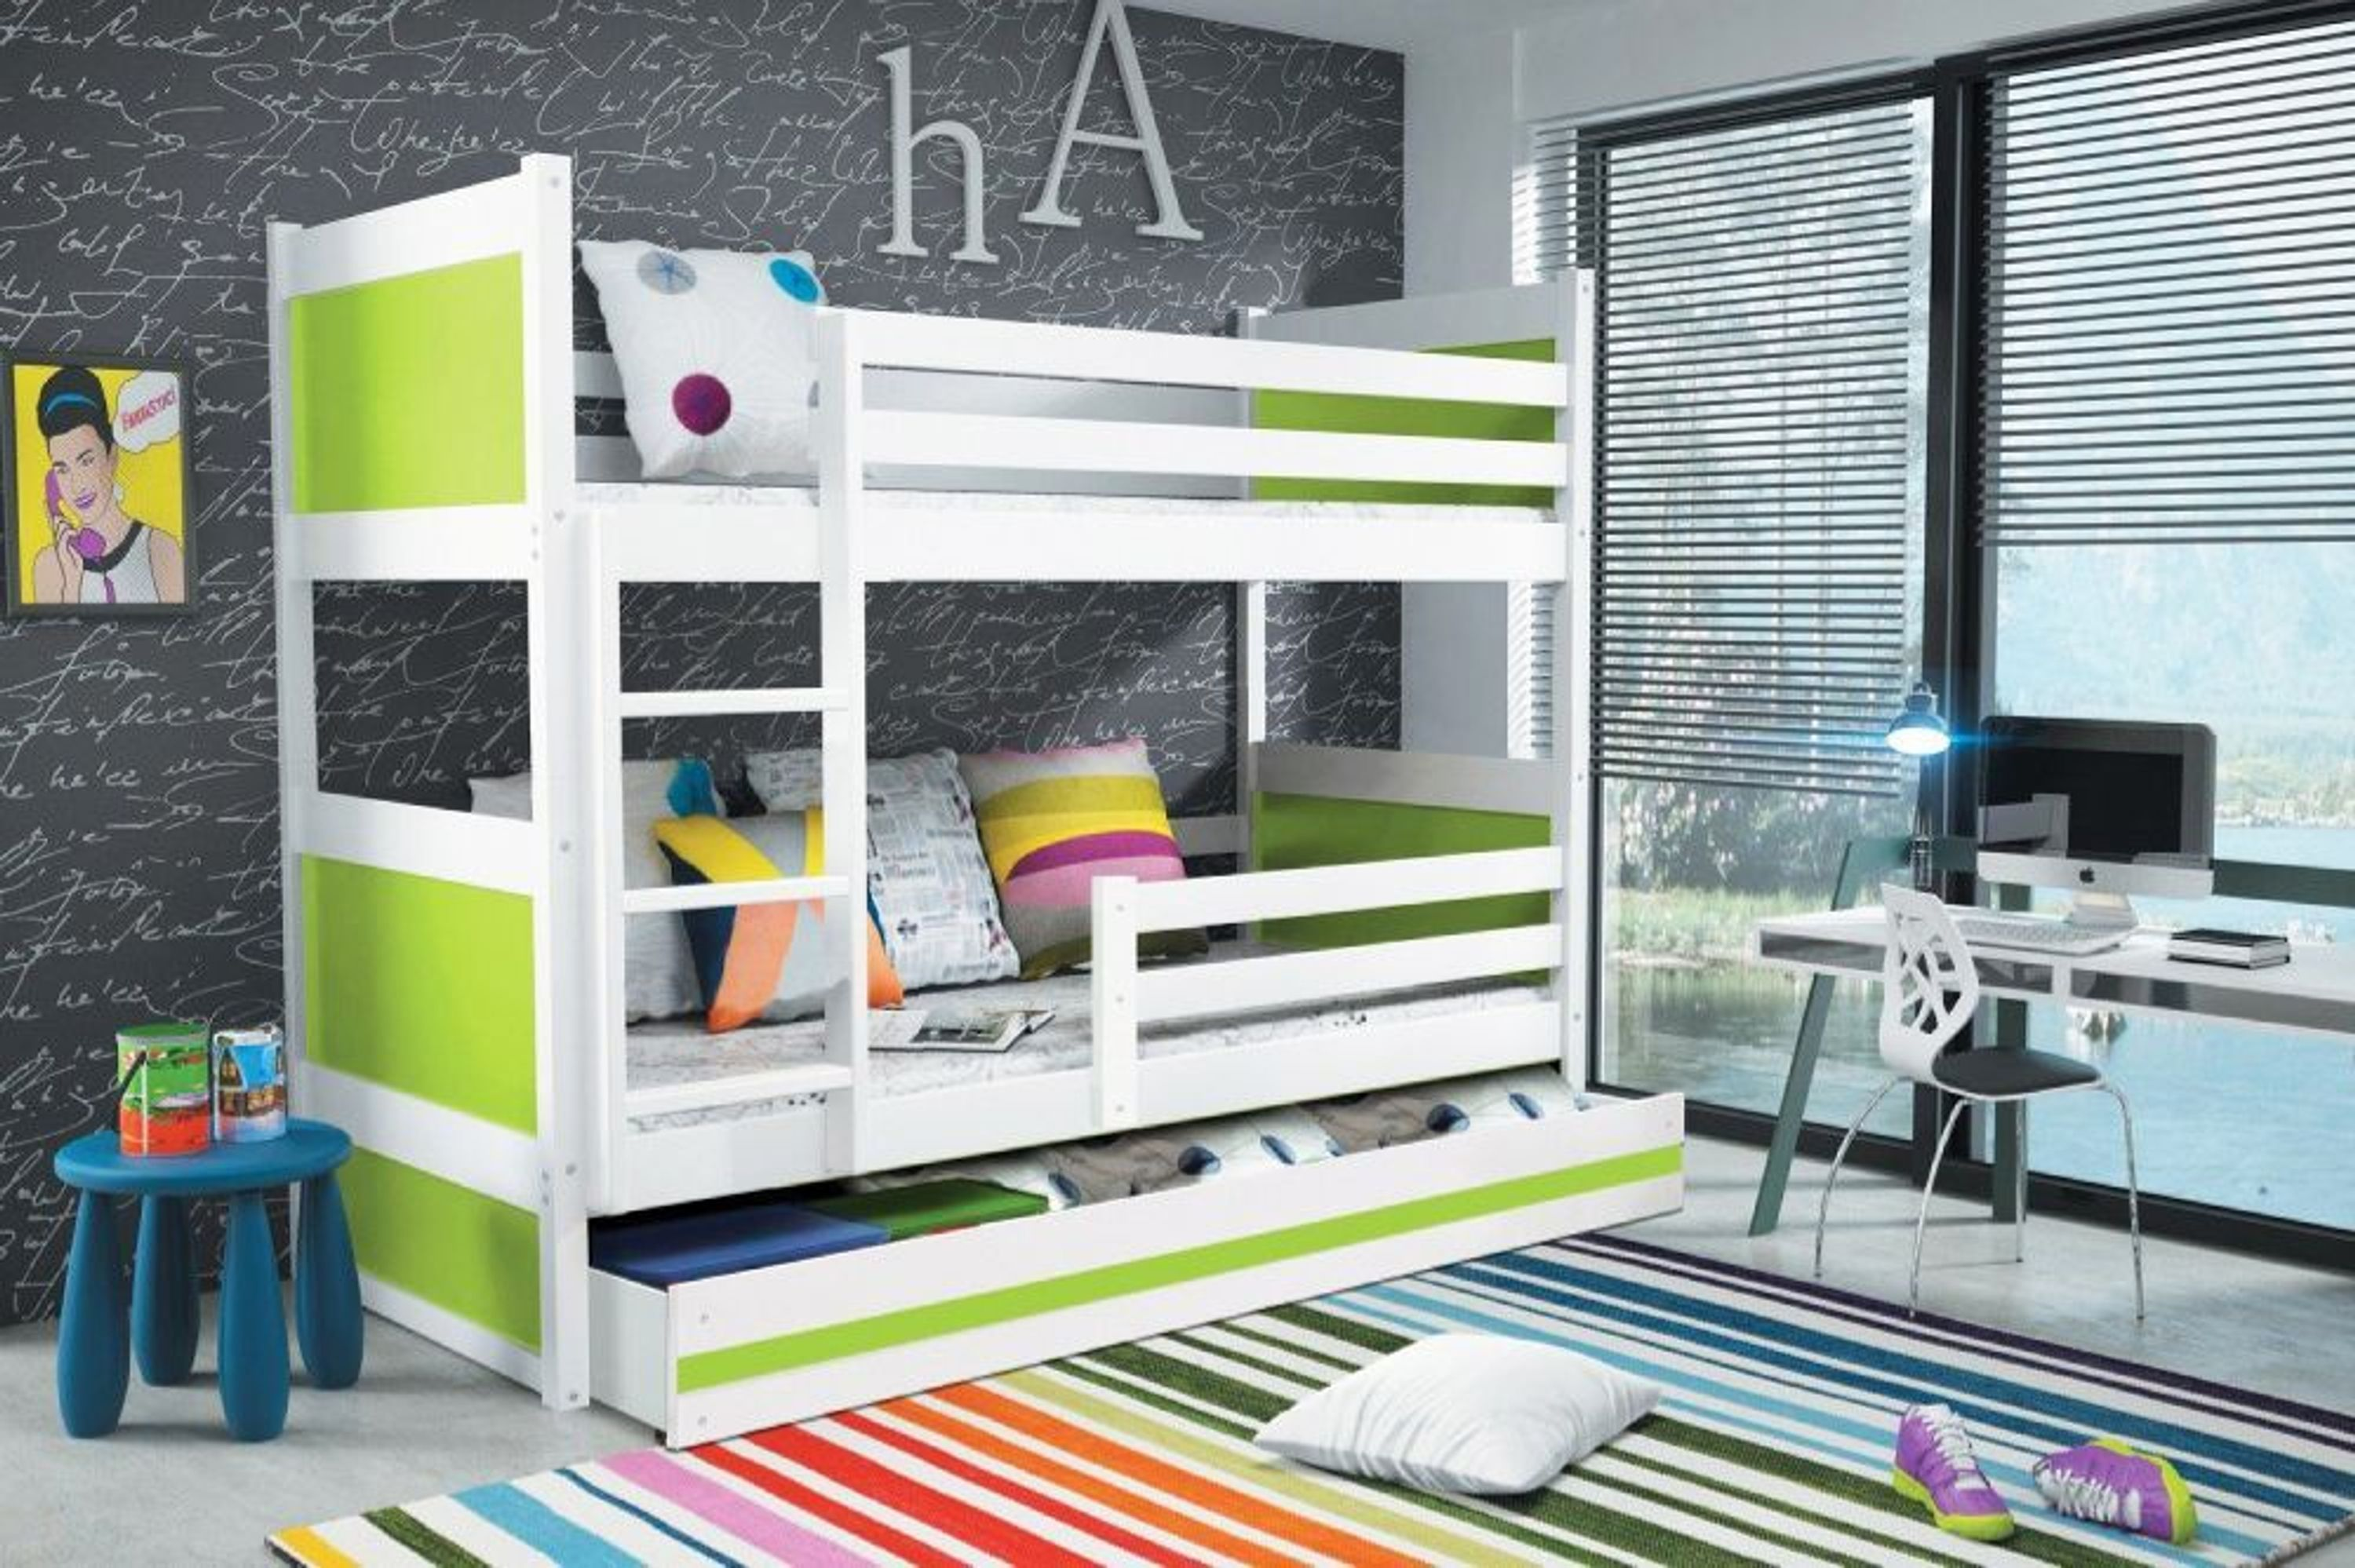 etagenbett joko wei mit bettkasten in gr n 200 x 90 cm kaufen bei. Black Bedroom Furniture Sets. Home Design Ideas